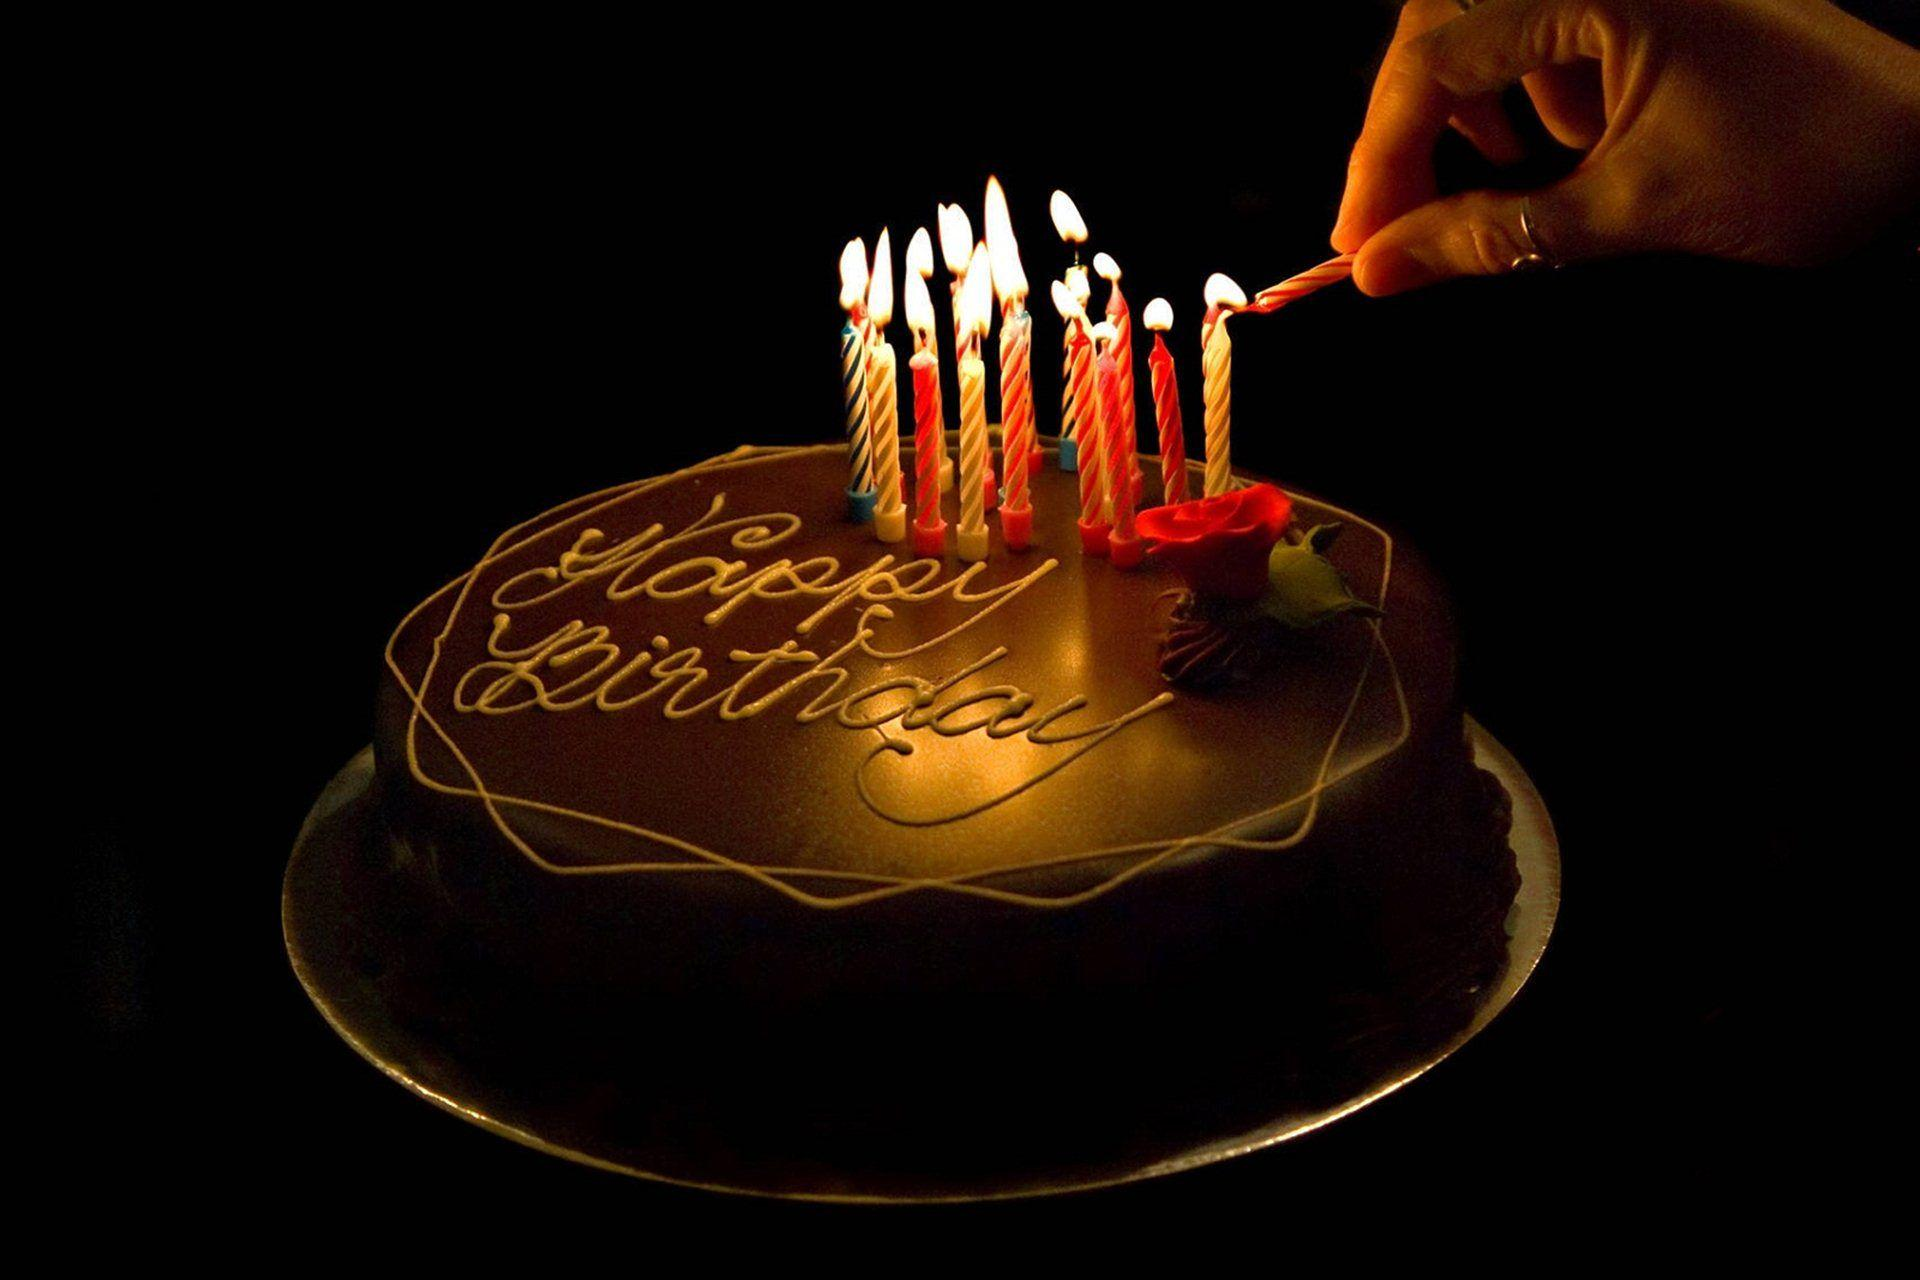 Birthday HD Image Galleries – High Resolution Pics for desktop and